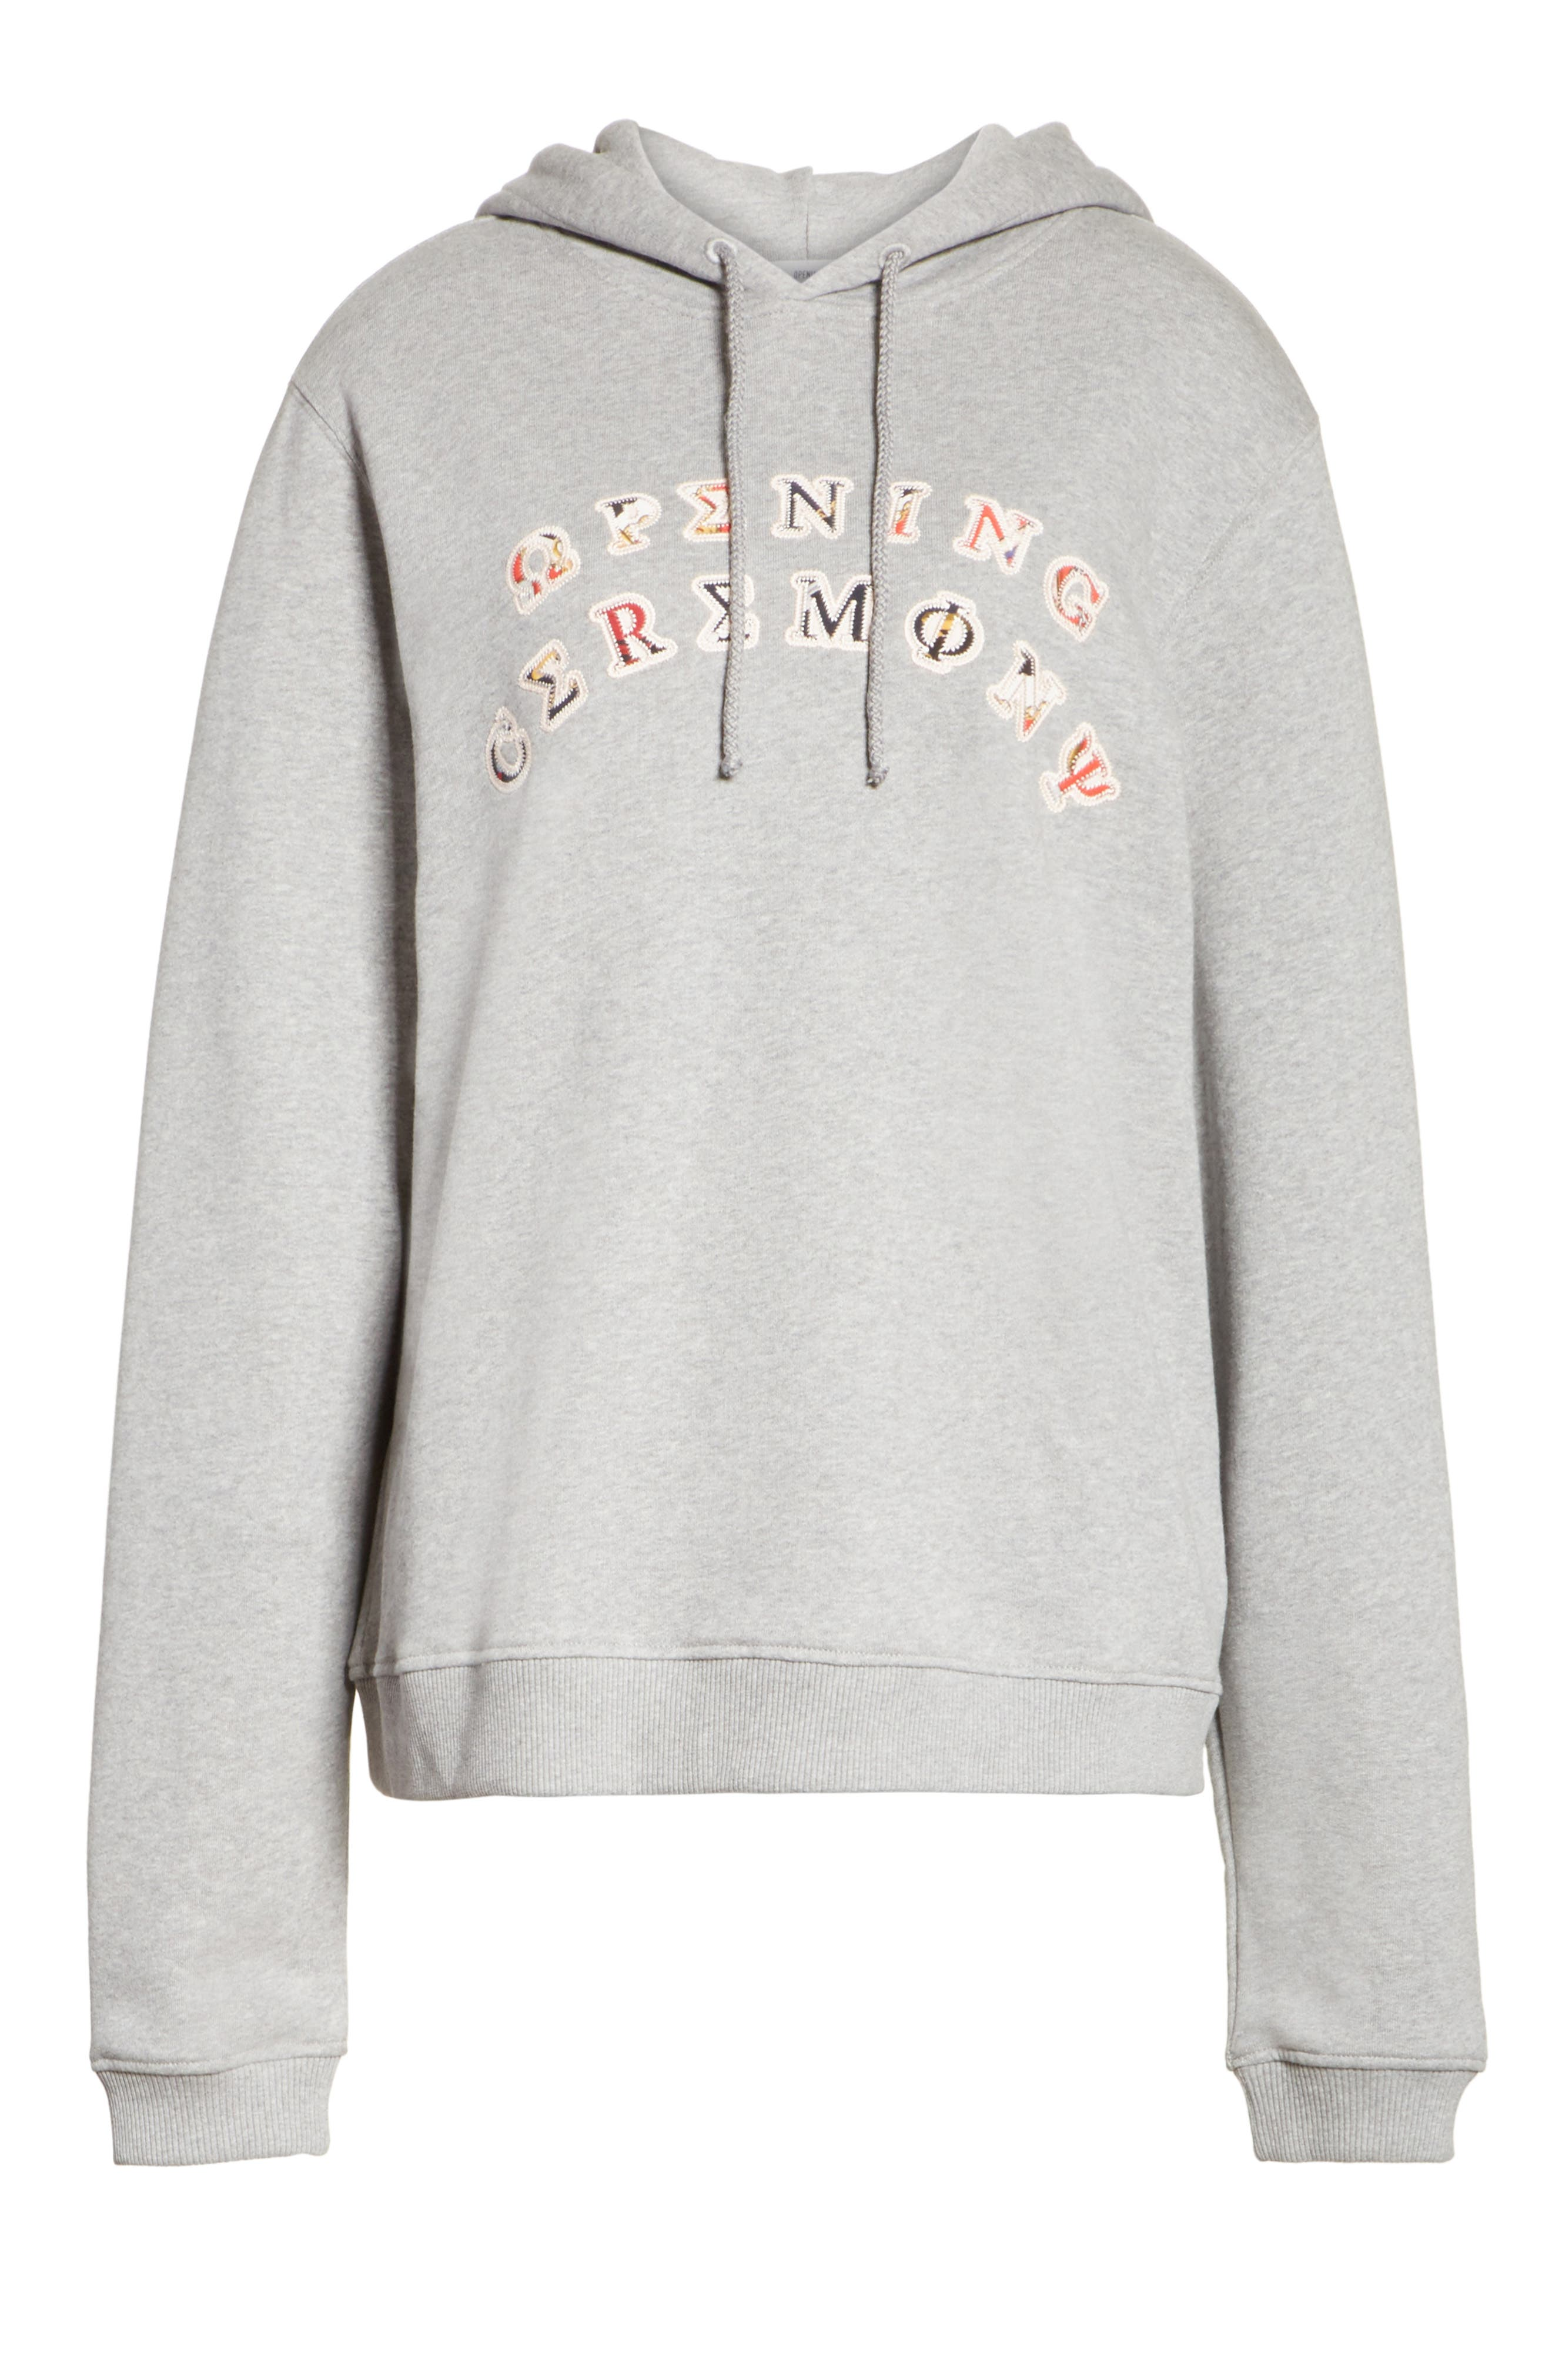 OC Patch Hoodie,                             Alternate thumbnail 6, color,                             030